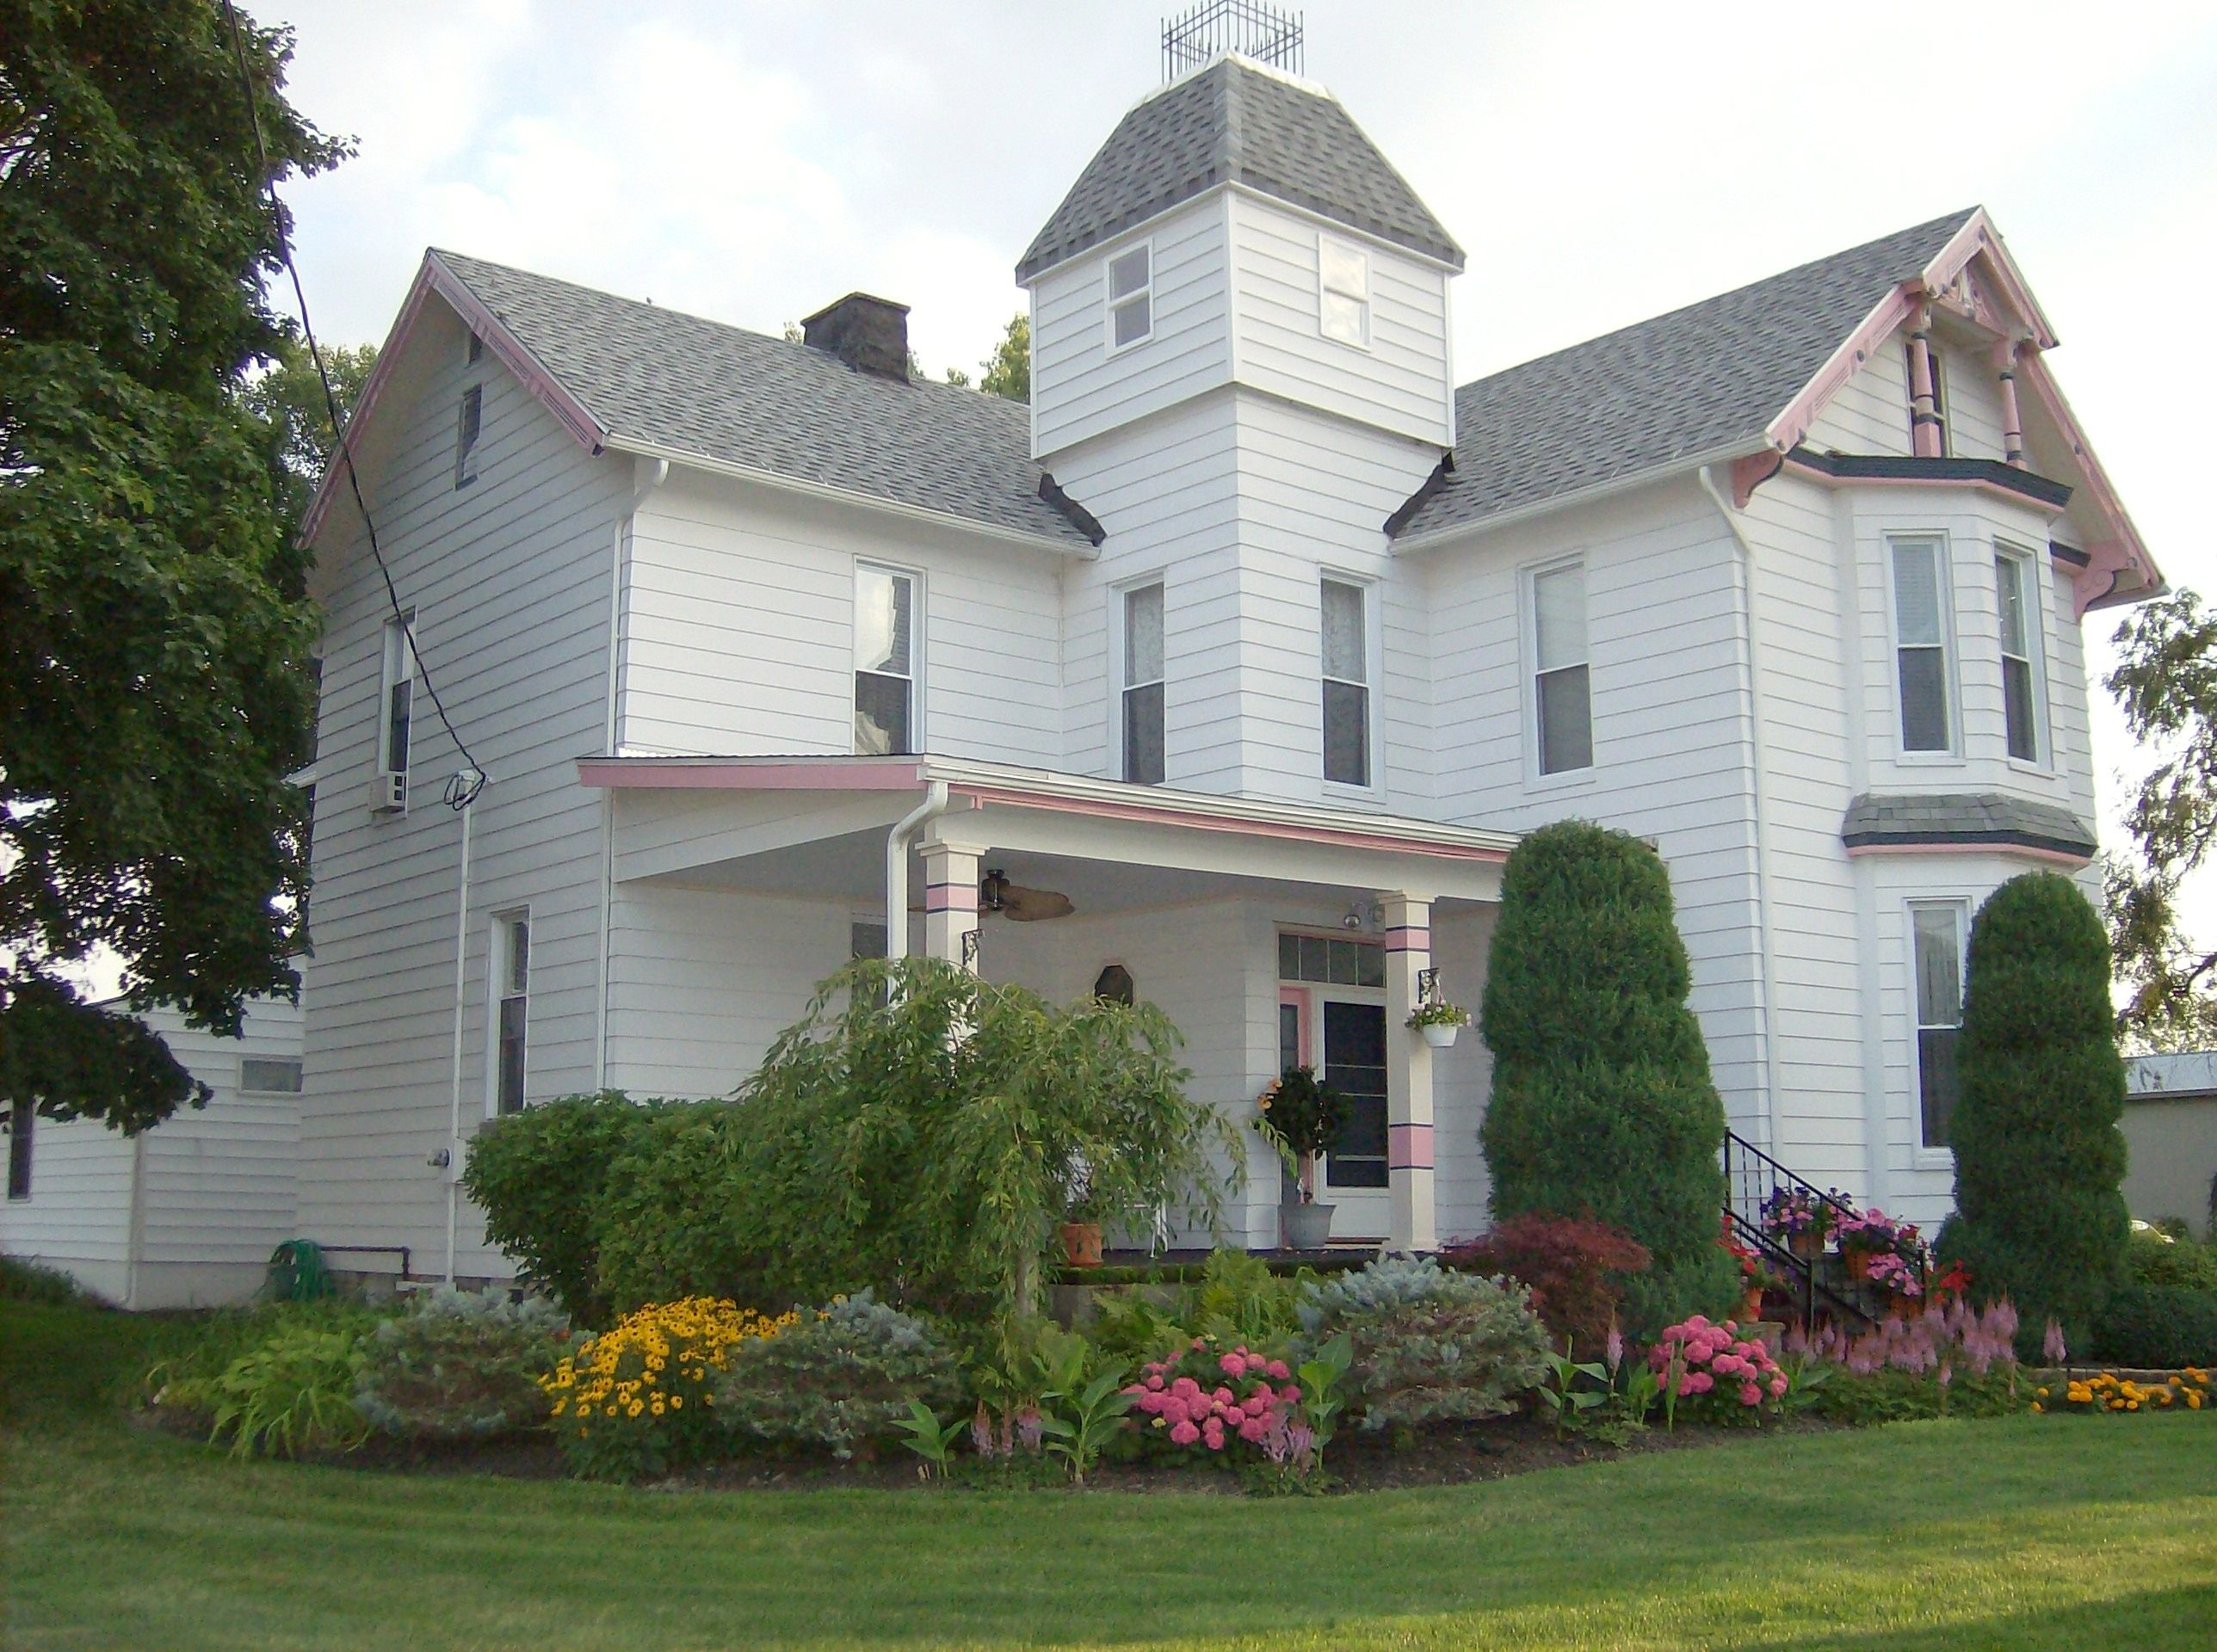 A beautiful Victorian Bed & Breakfast on the shores of Lake Erie - Marblehead, Ohio. #lodging #travel